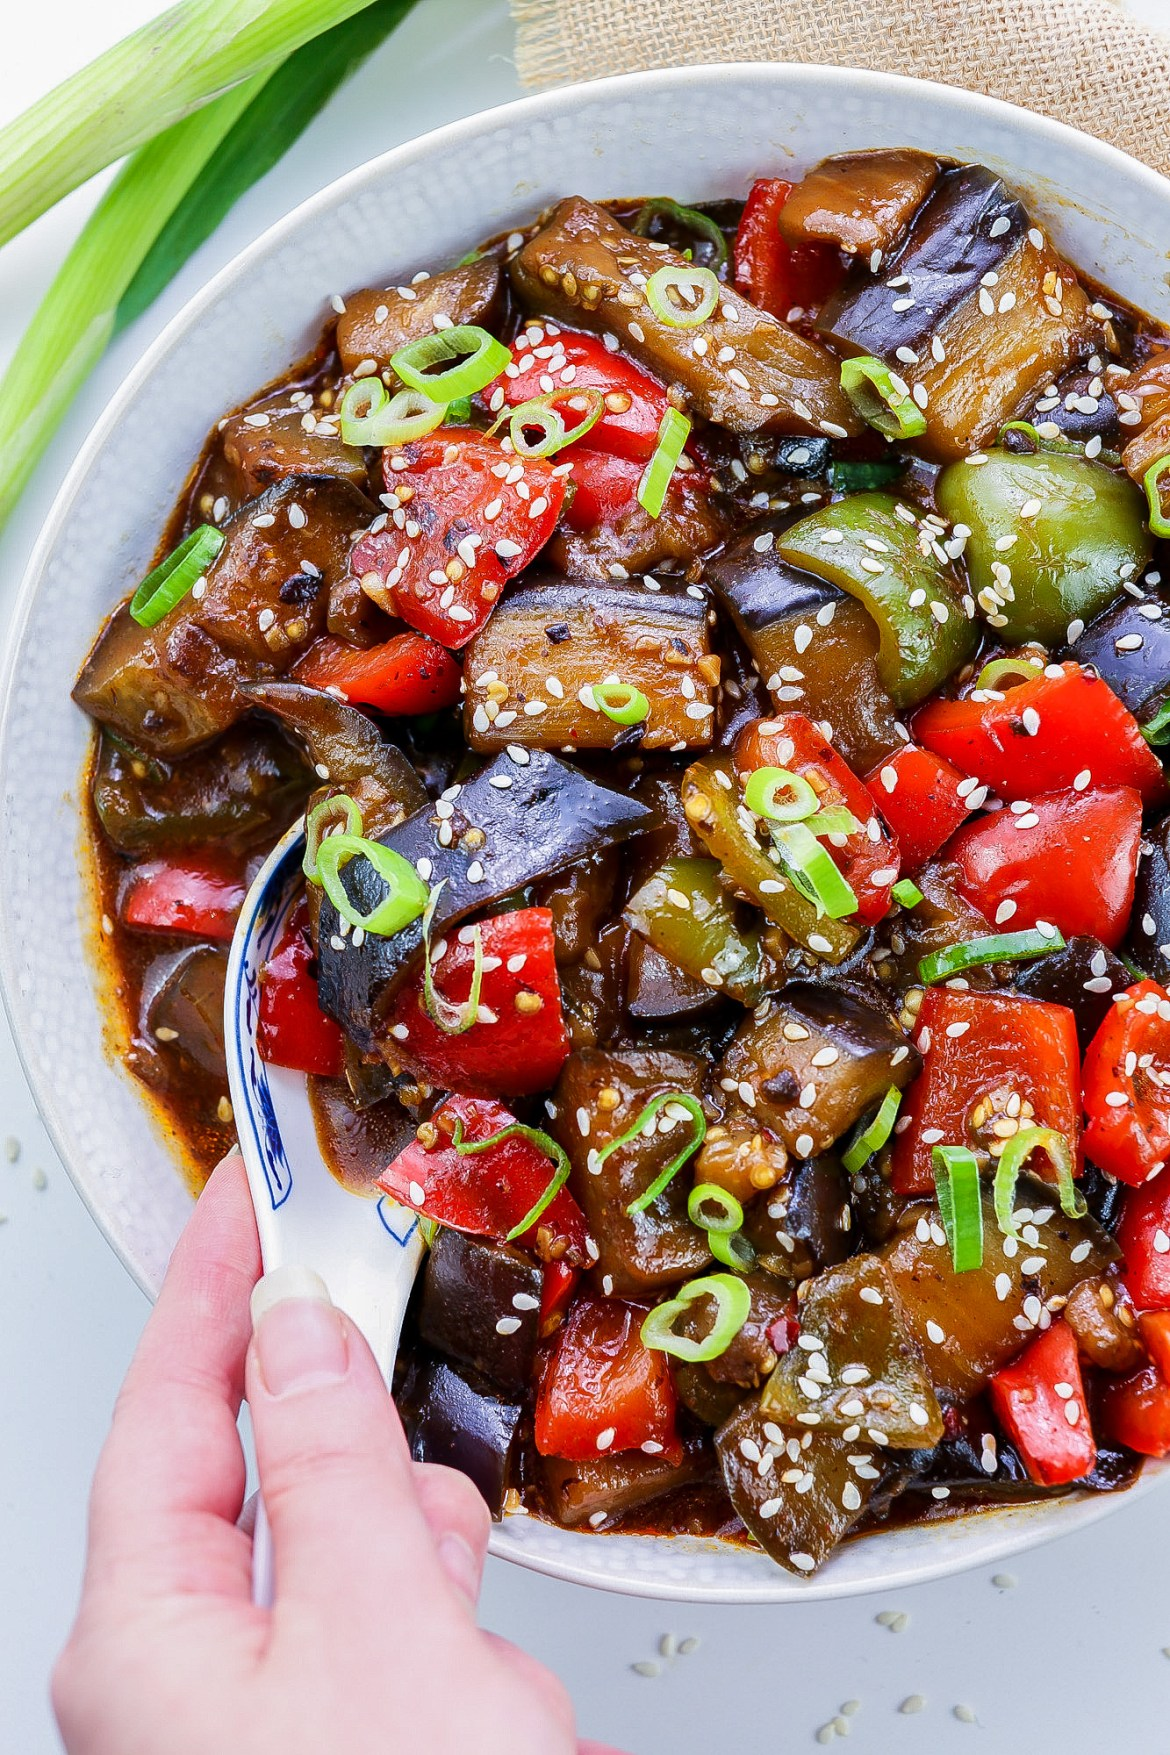 Vegan Aubergine & Peppers in Black Bean Sauce in a white bowl topped with green onions and sesame seeds, and left hand holding a spoonful of the dish